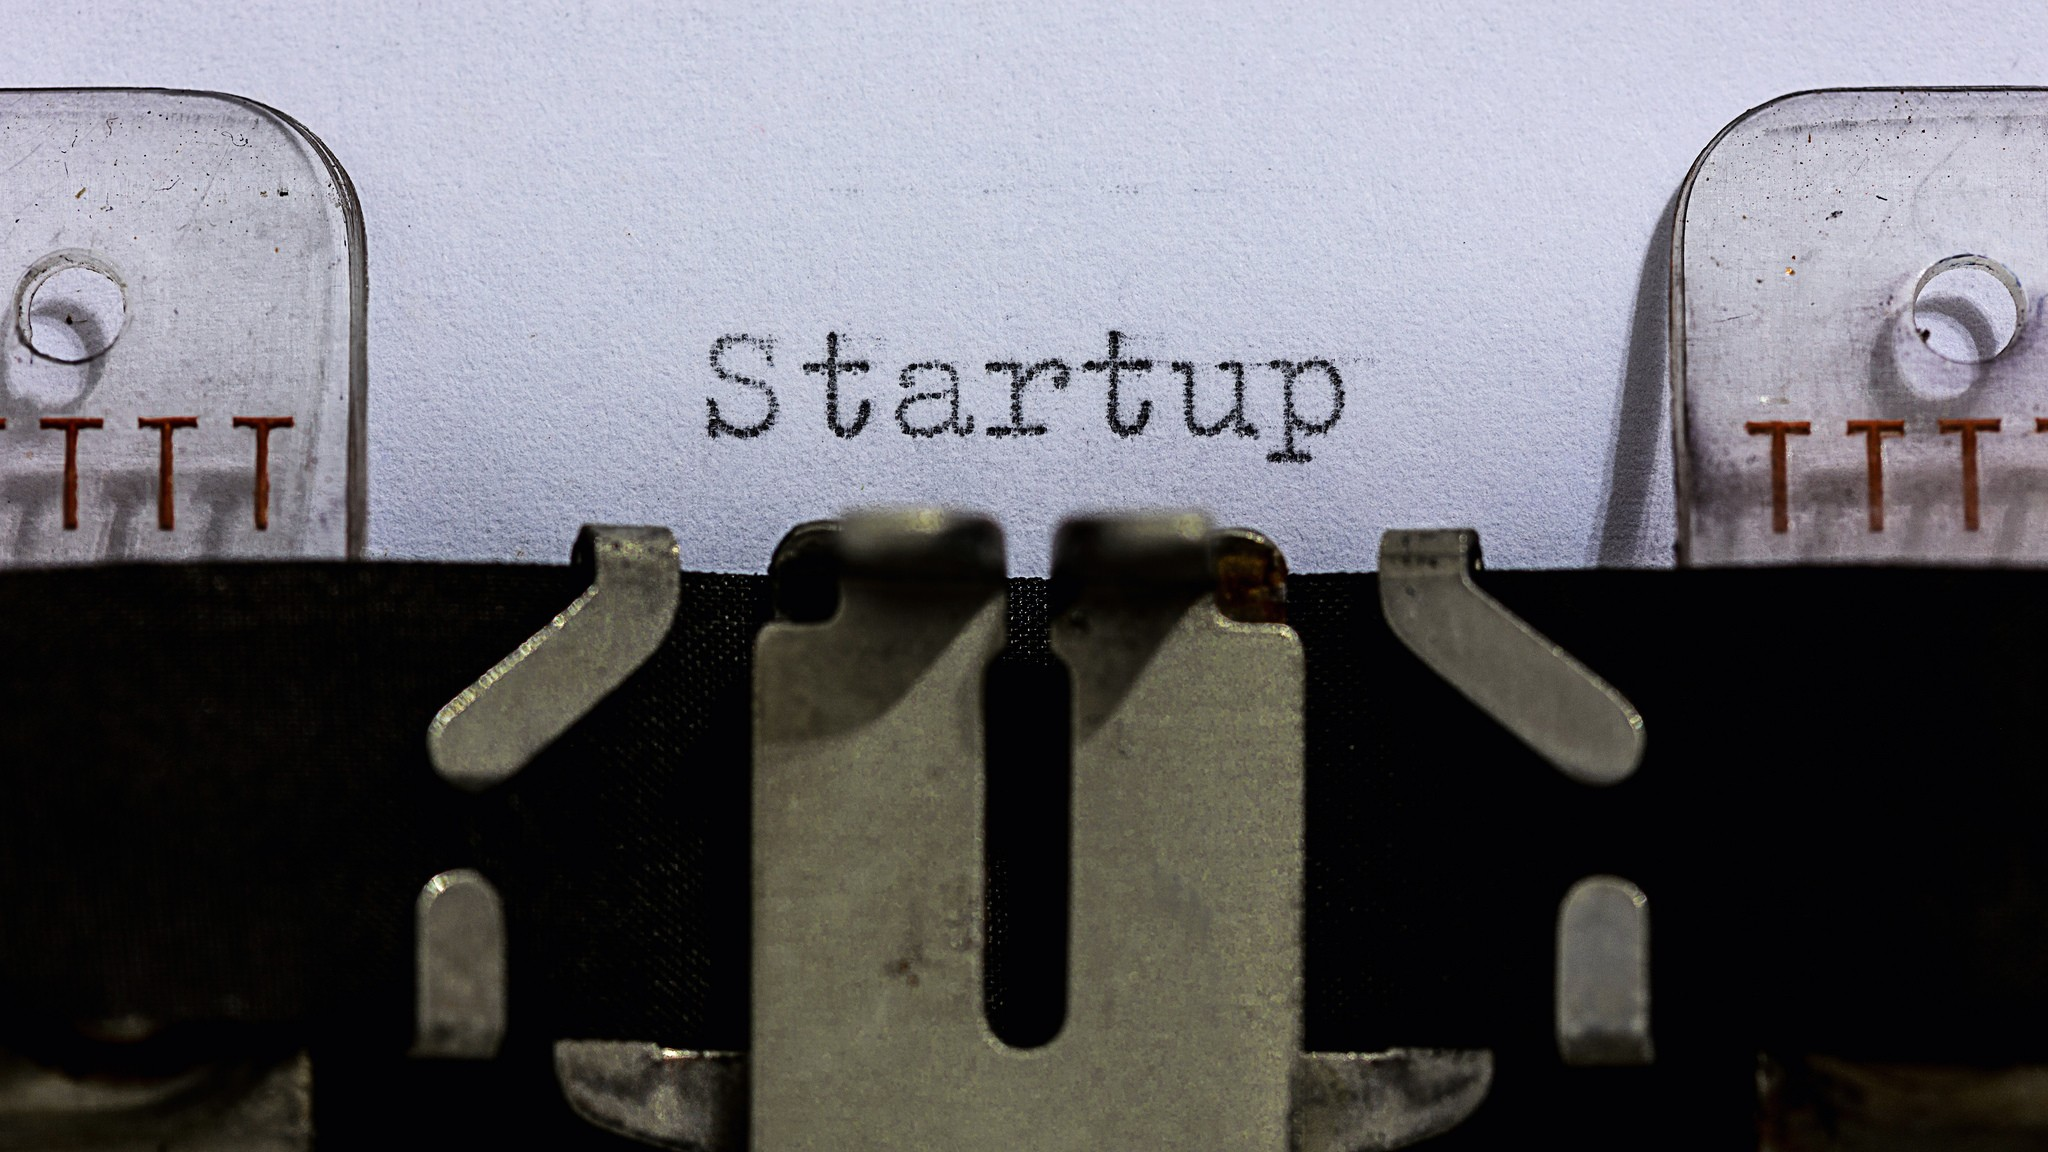 Startup (Foto: Flickr/ Dennis Skley/ Creative Commons)